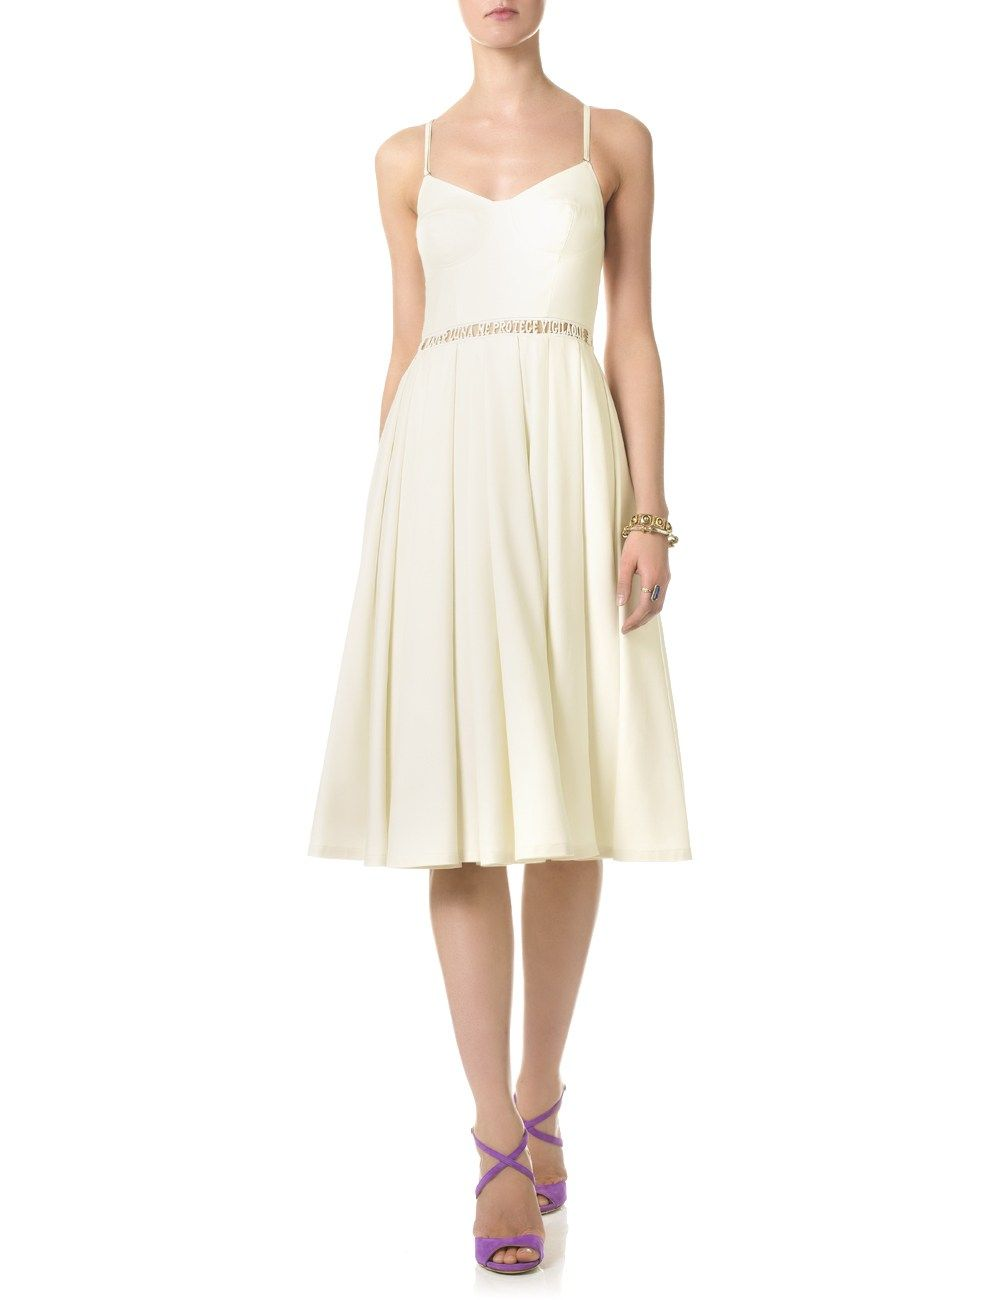 Ivory Wild Silk Insomnia Dress | Lena Lumelsky | Avenue32 - Perfection.